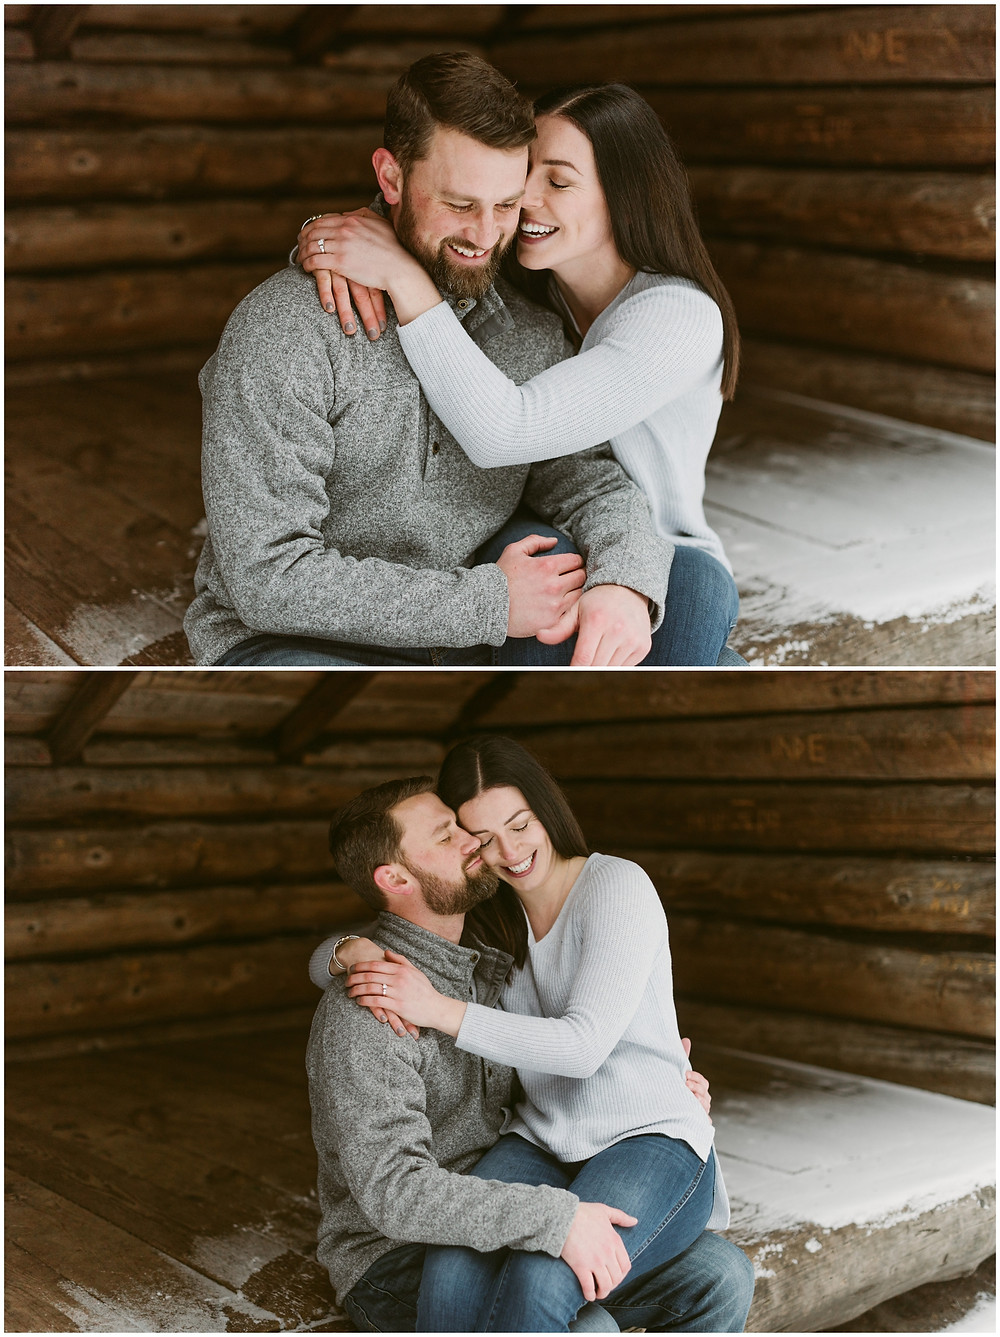 Winter engagement photos in an Adirondack lean-to by Mountainaire Gatherings